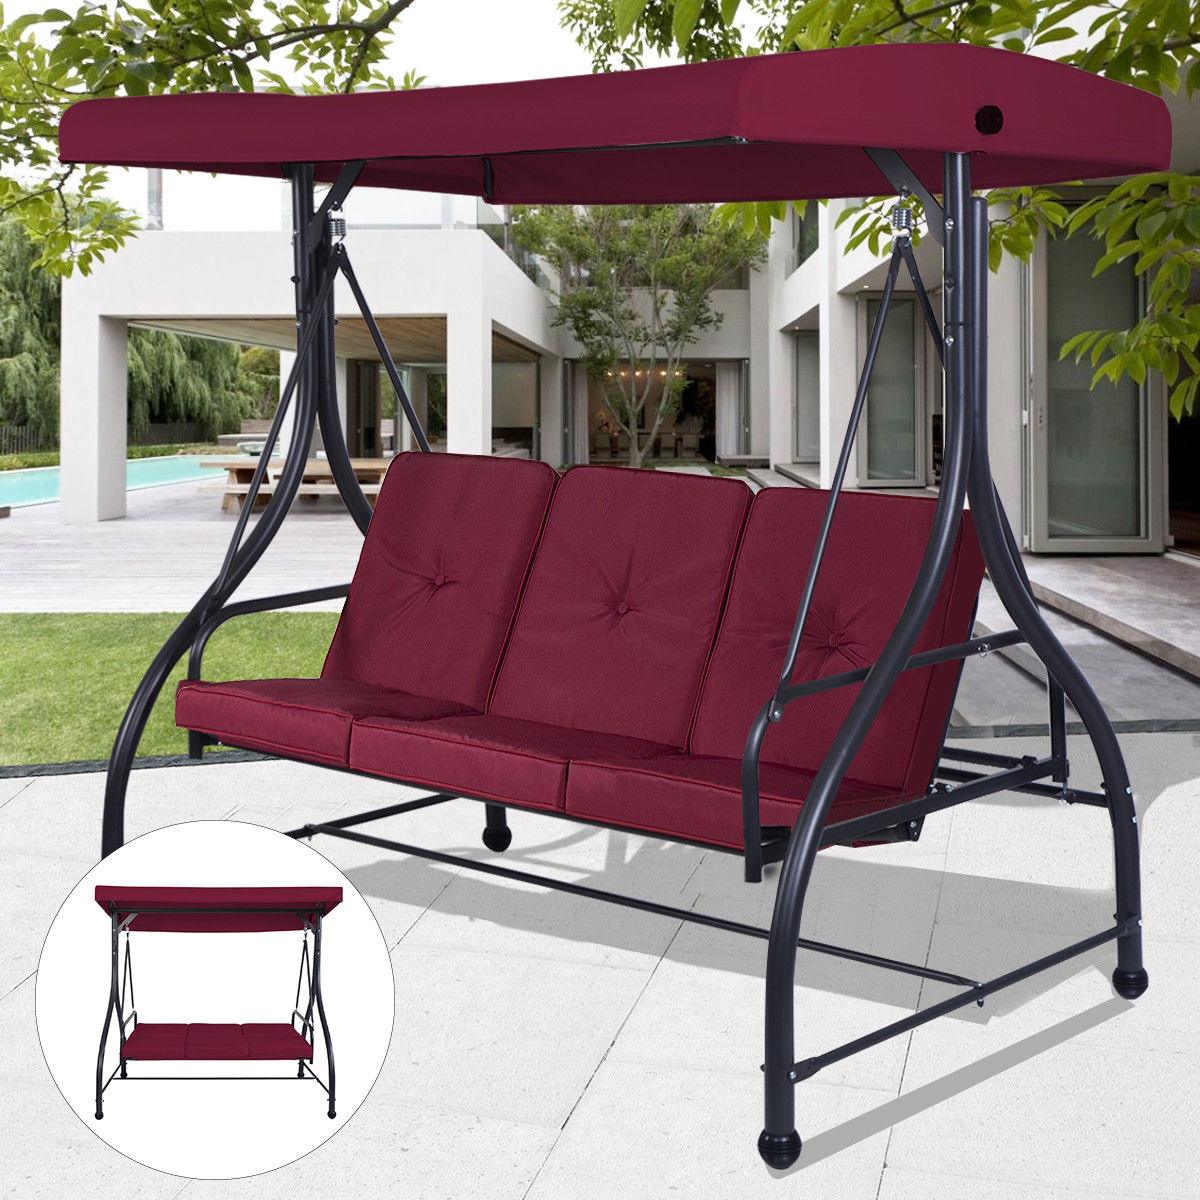 Costway Converting Outdoor Swing Canopy Hammock 3 Seats Patio Deck Furniture Wine Red by Costway